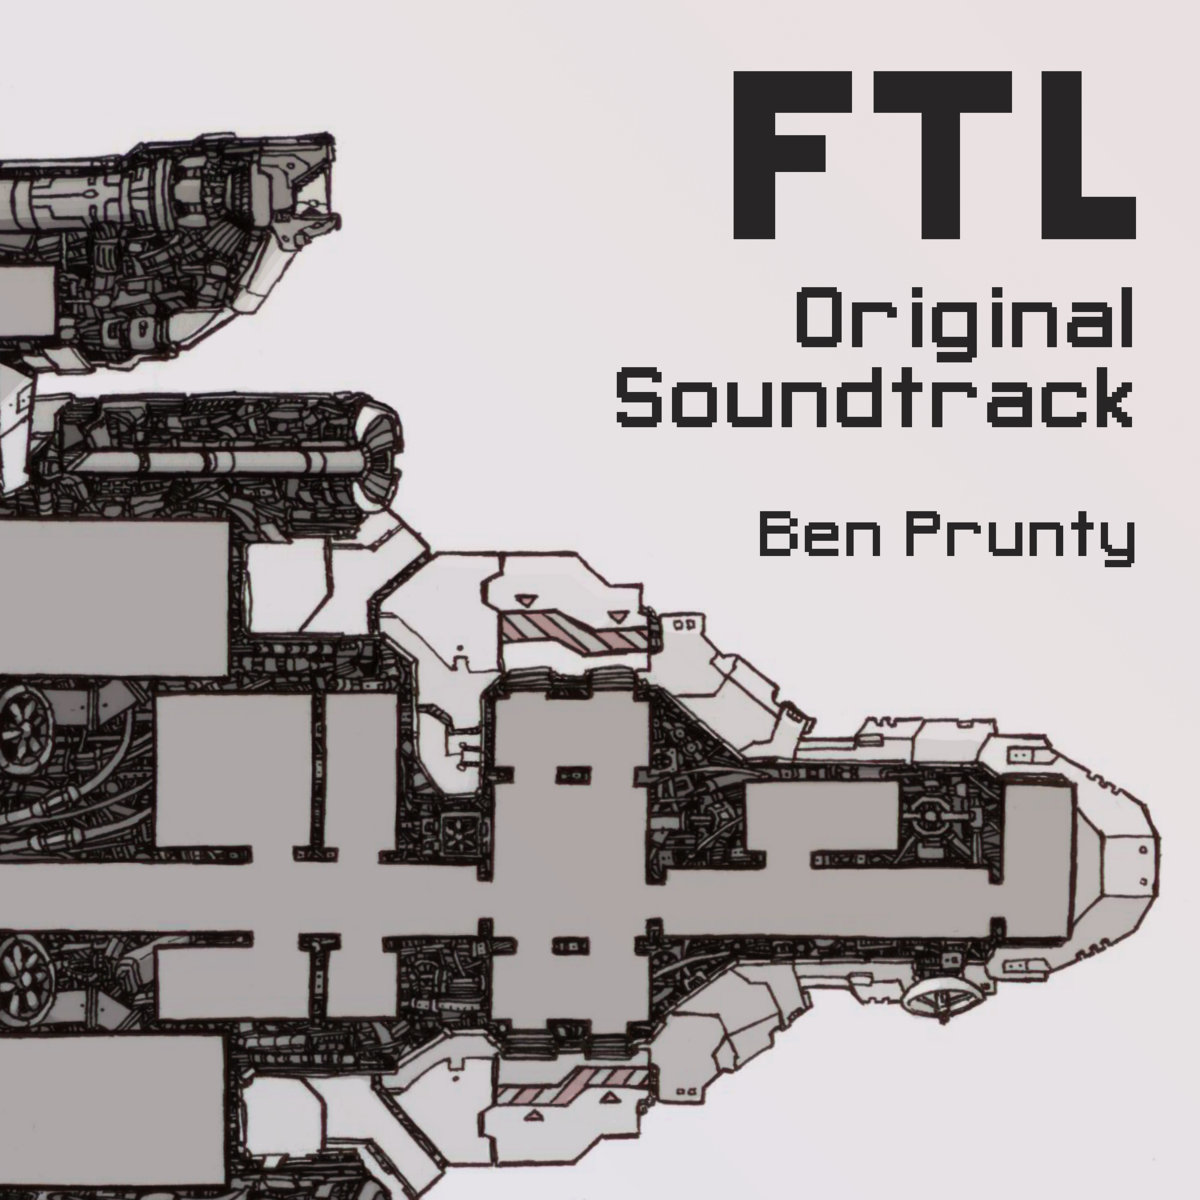 mobile-games-with-fantastic-soundtracks-part-3-ftl-faster-than-light